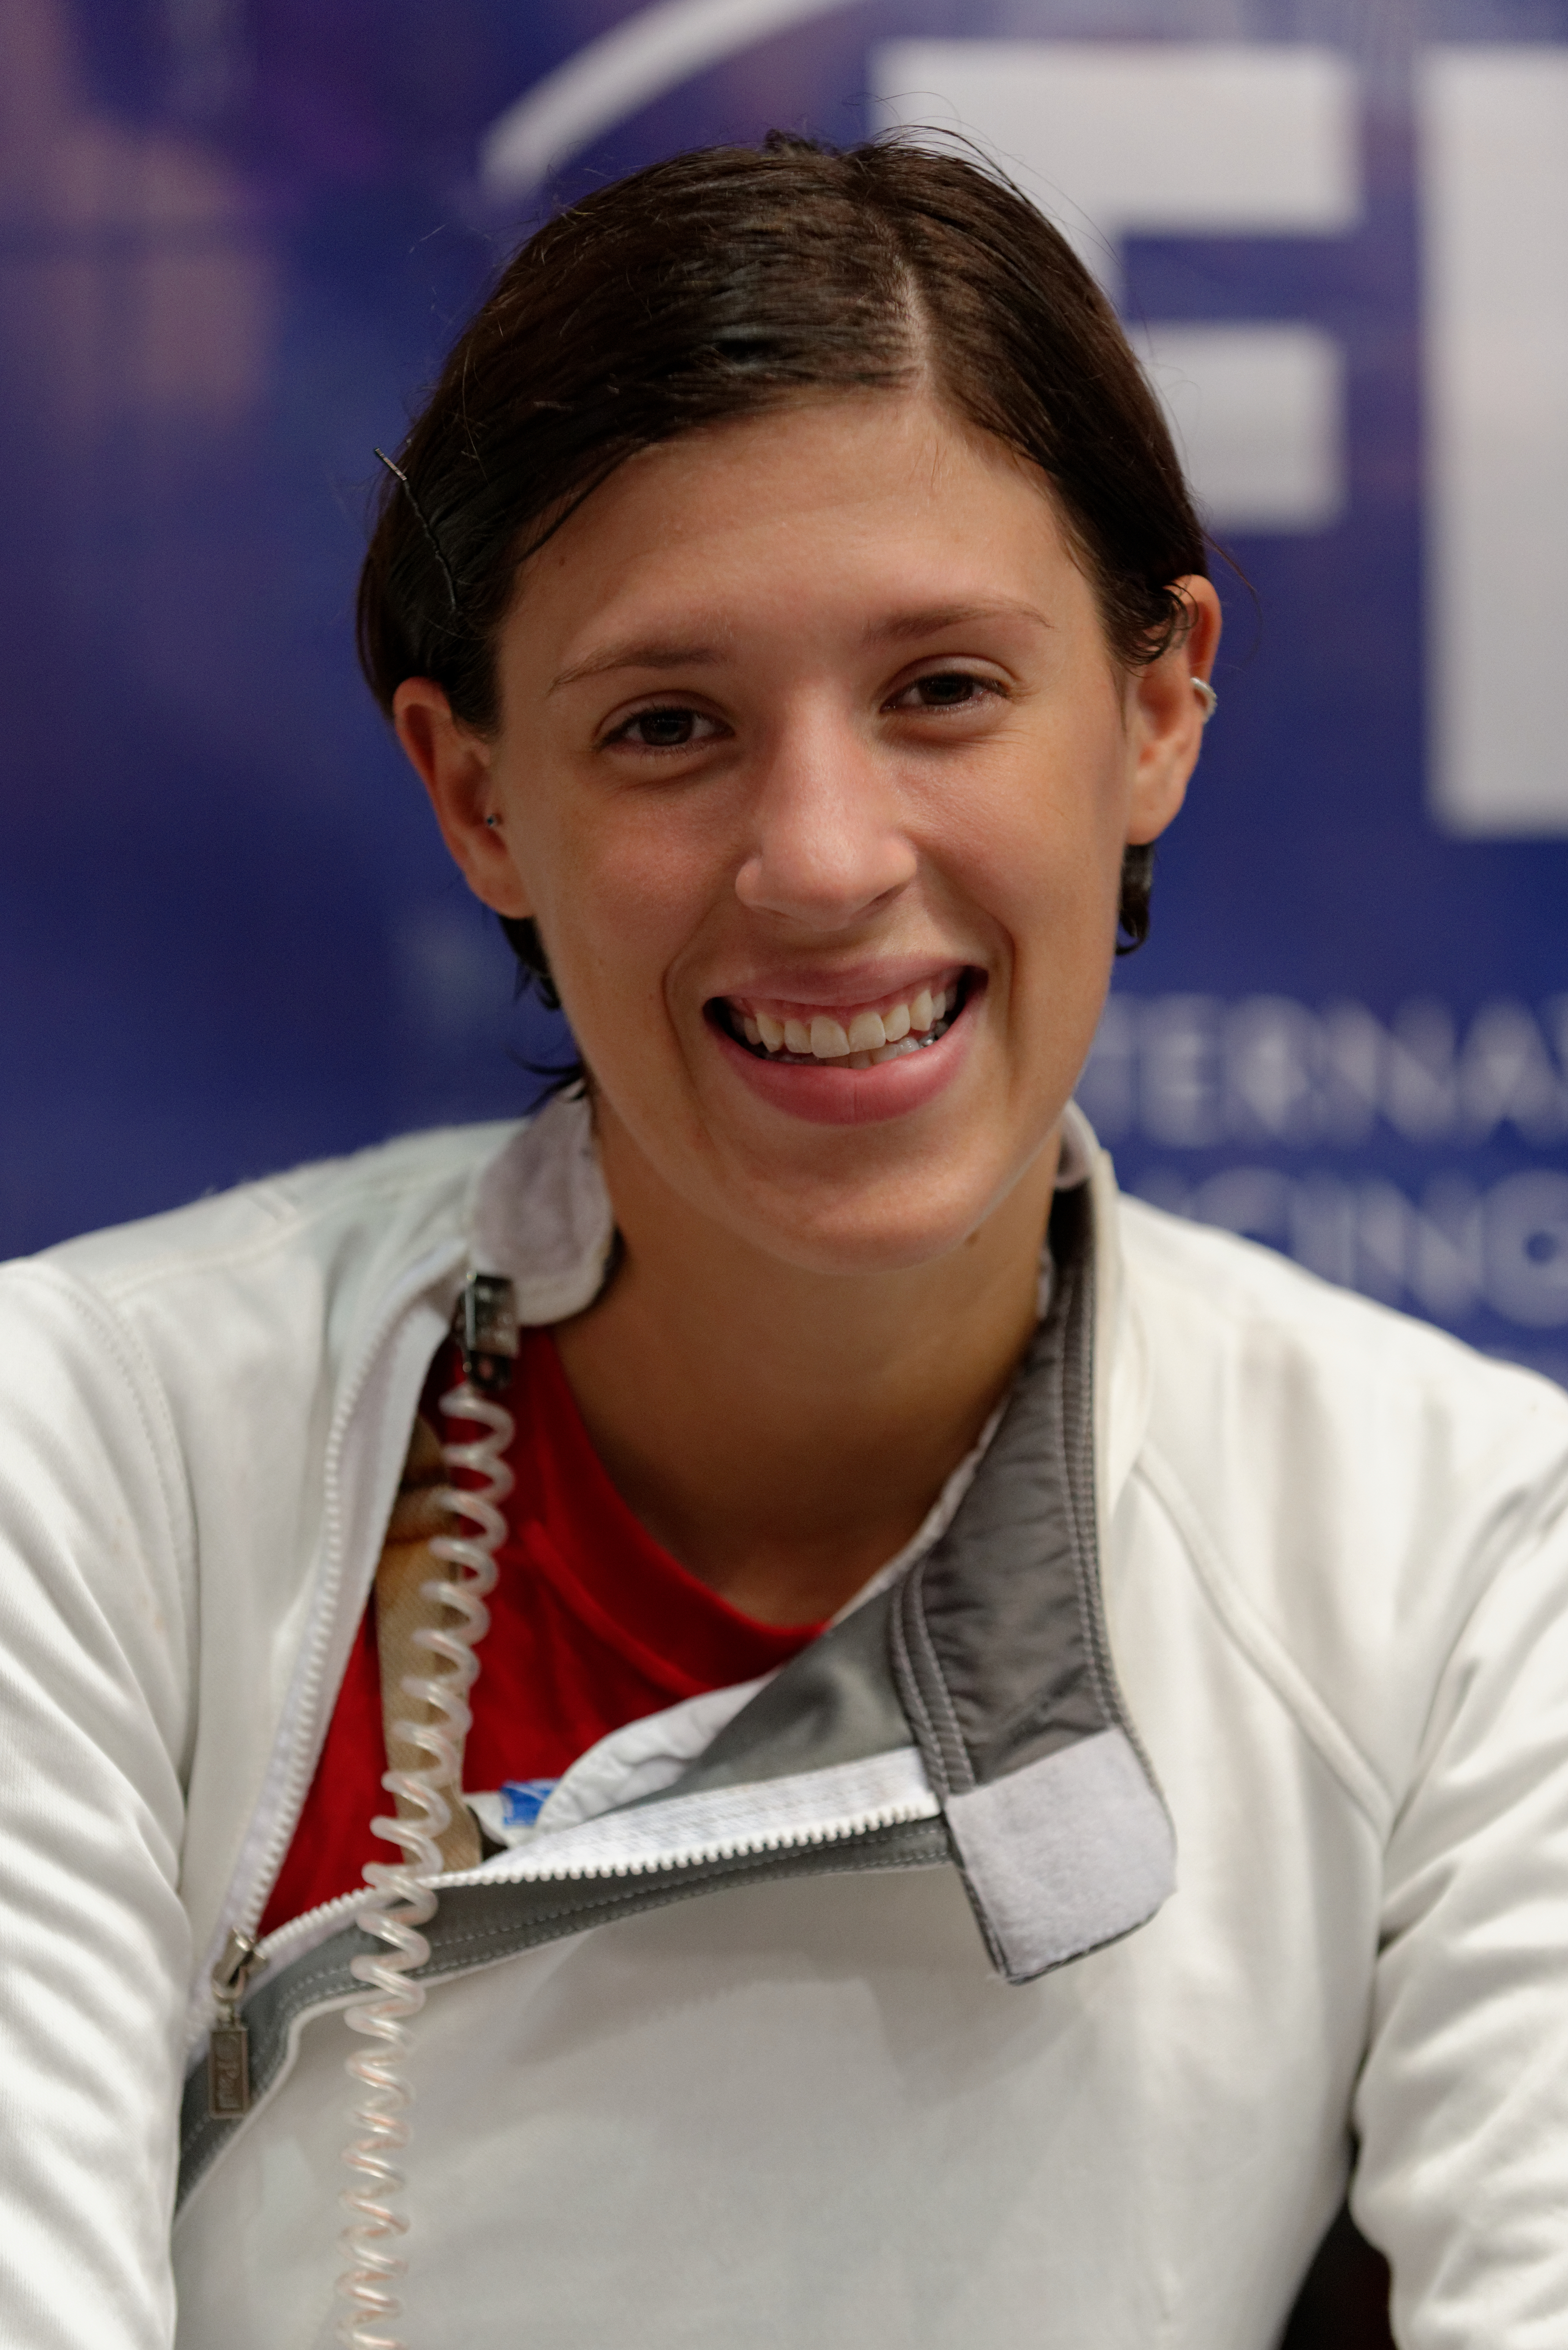 Hurley at the [[2013 World Fencing Championships]]